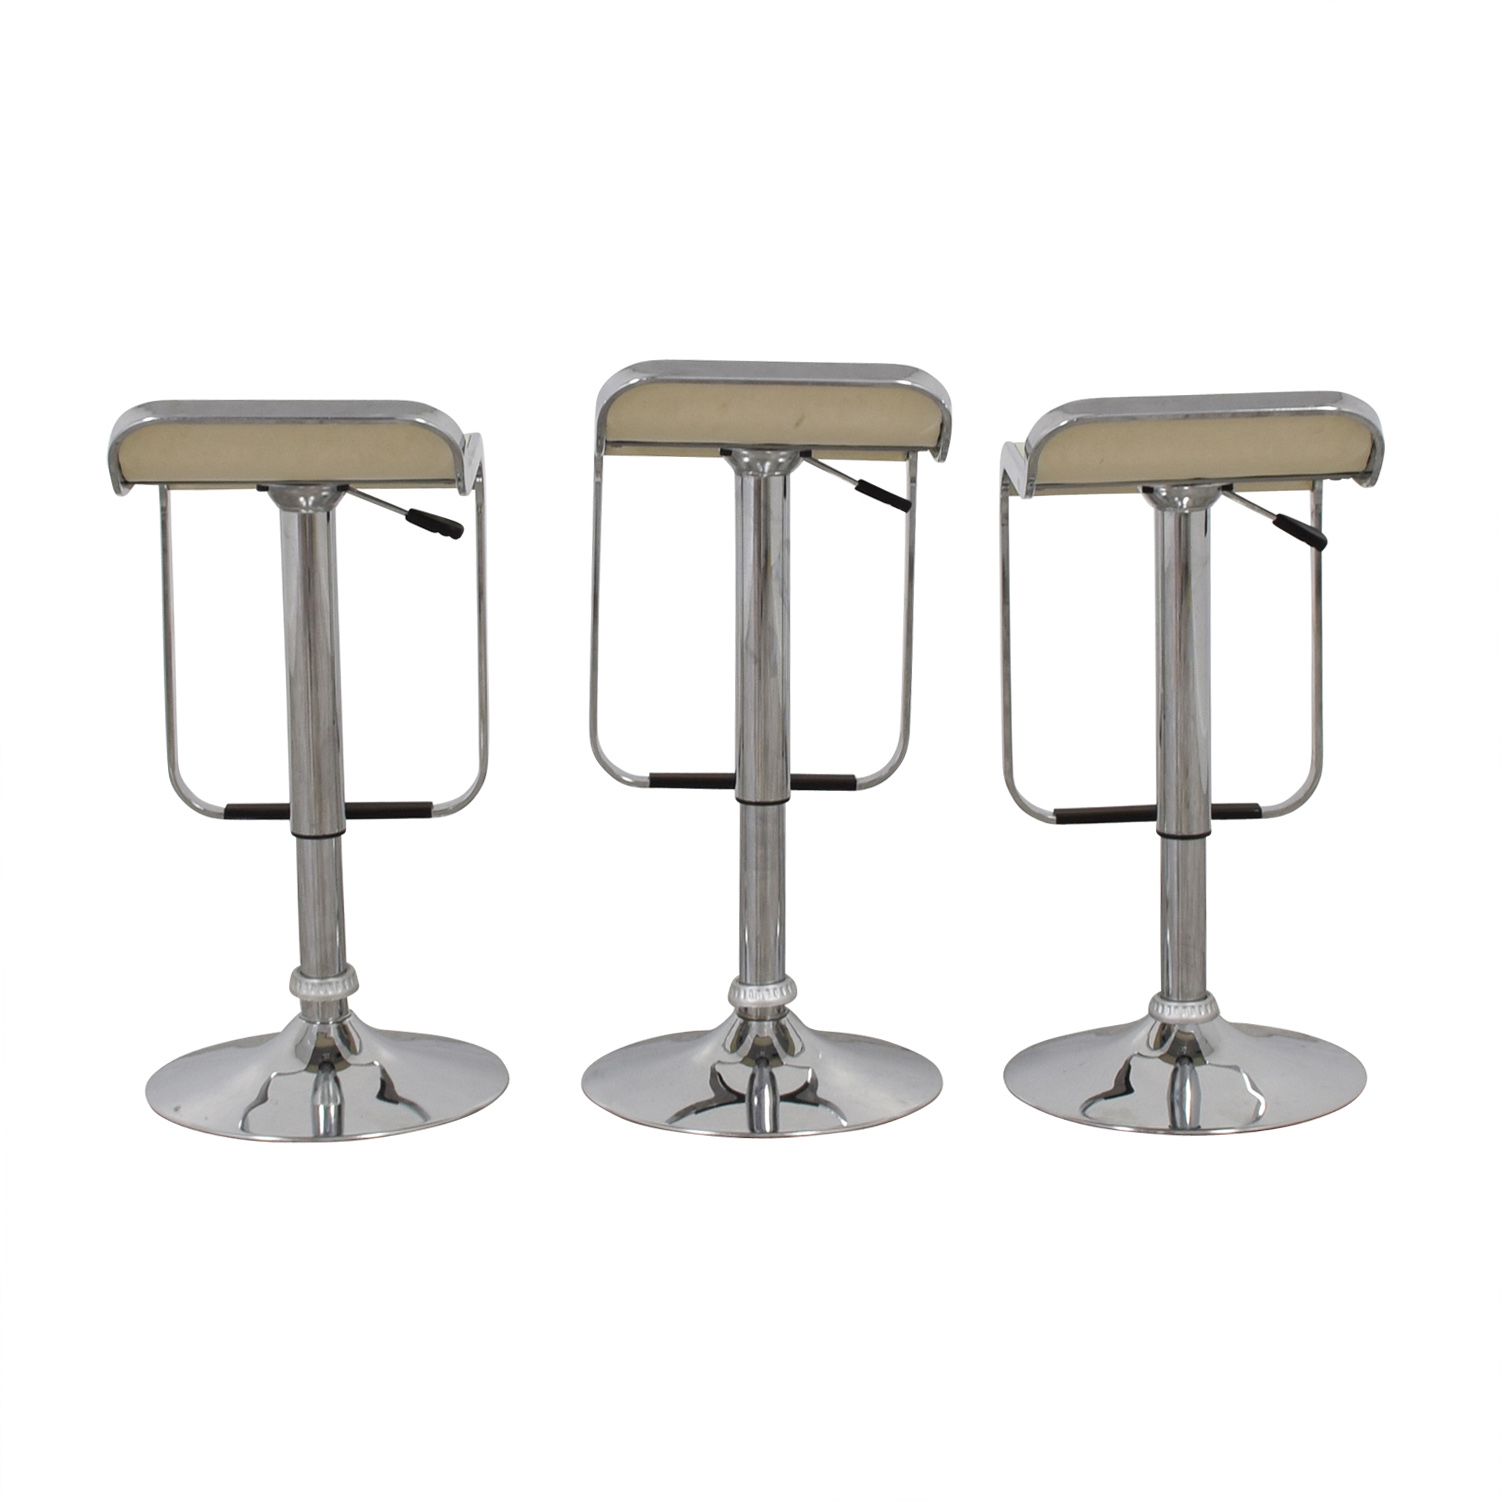 Remarkable 80 Off Pottery Barn Pottery Barn White And Chrome Stools Chairs Machost Co Dining Chair Design Ideas Machostcouk